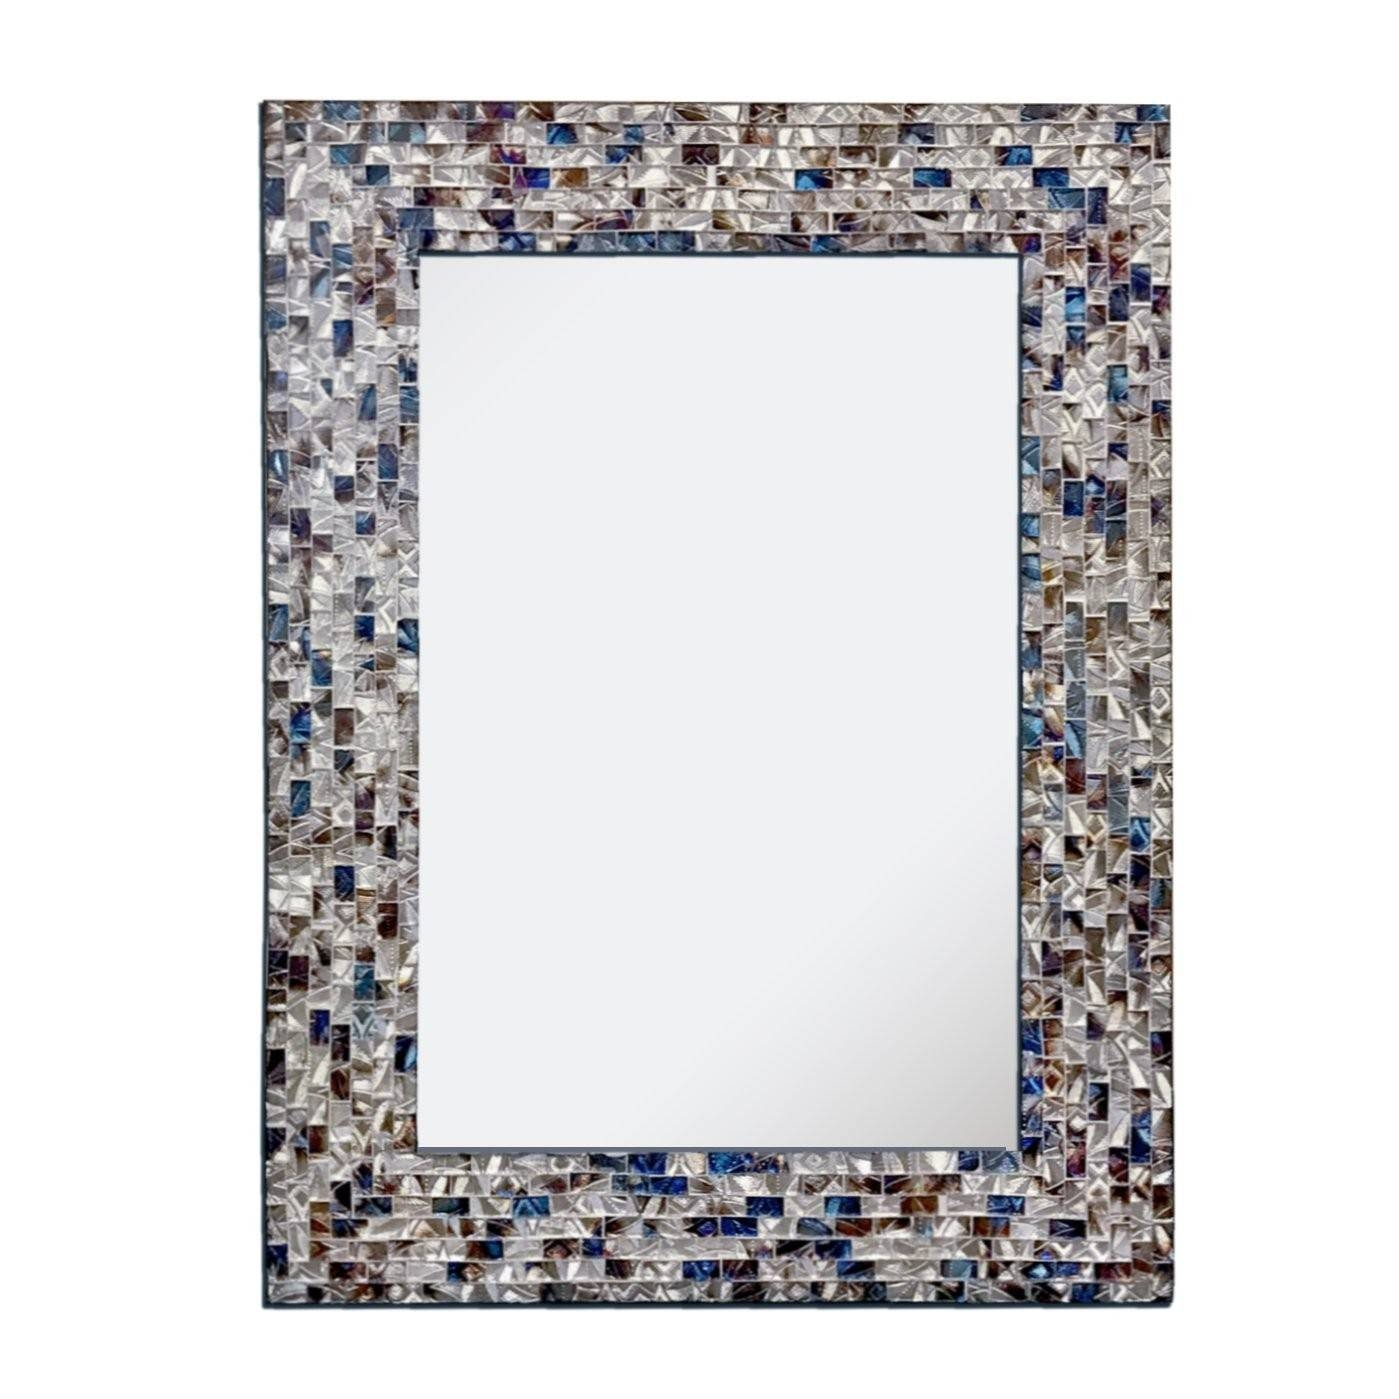 Shop Wall Mirror, Clock, Crackled Glass Mosaic Wall Decor - Decorshore throughout Mosaic Wall Mirrors (Image 23 of 25)